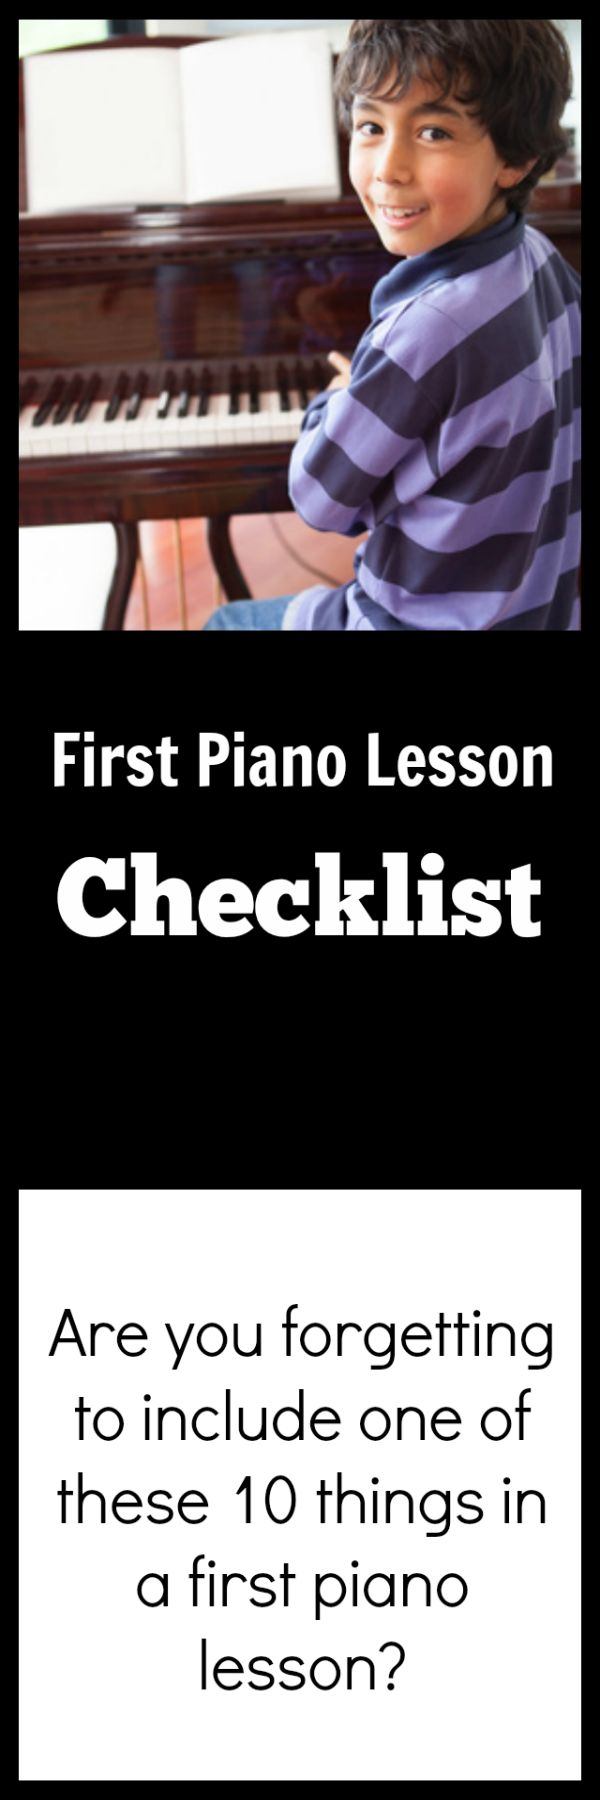 Check out our list of 10 things you should include in a very first piano lesson and add these ideas to your tool kit of teaching knowledge.